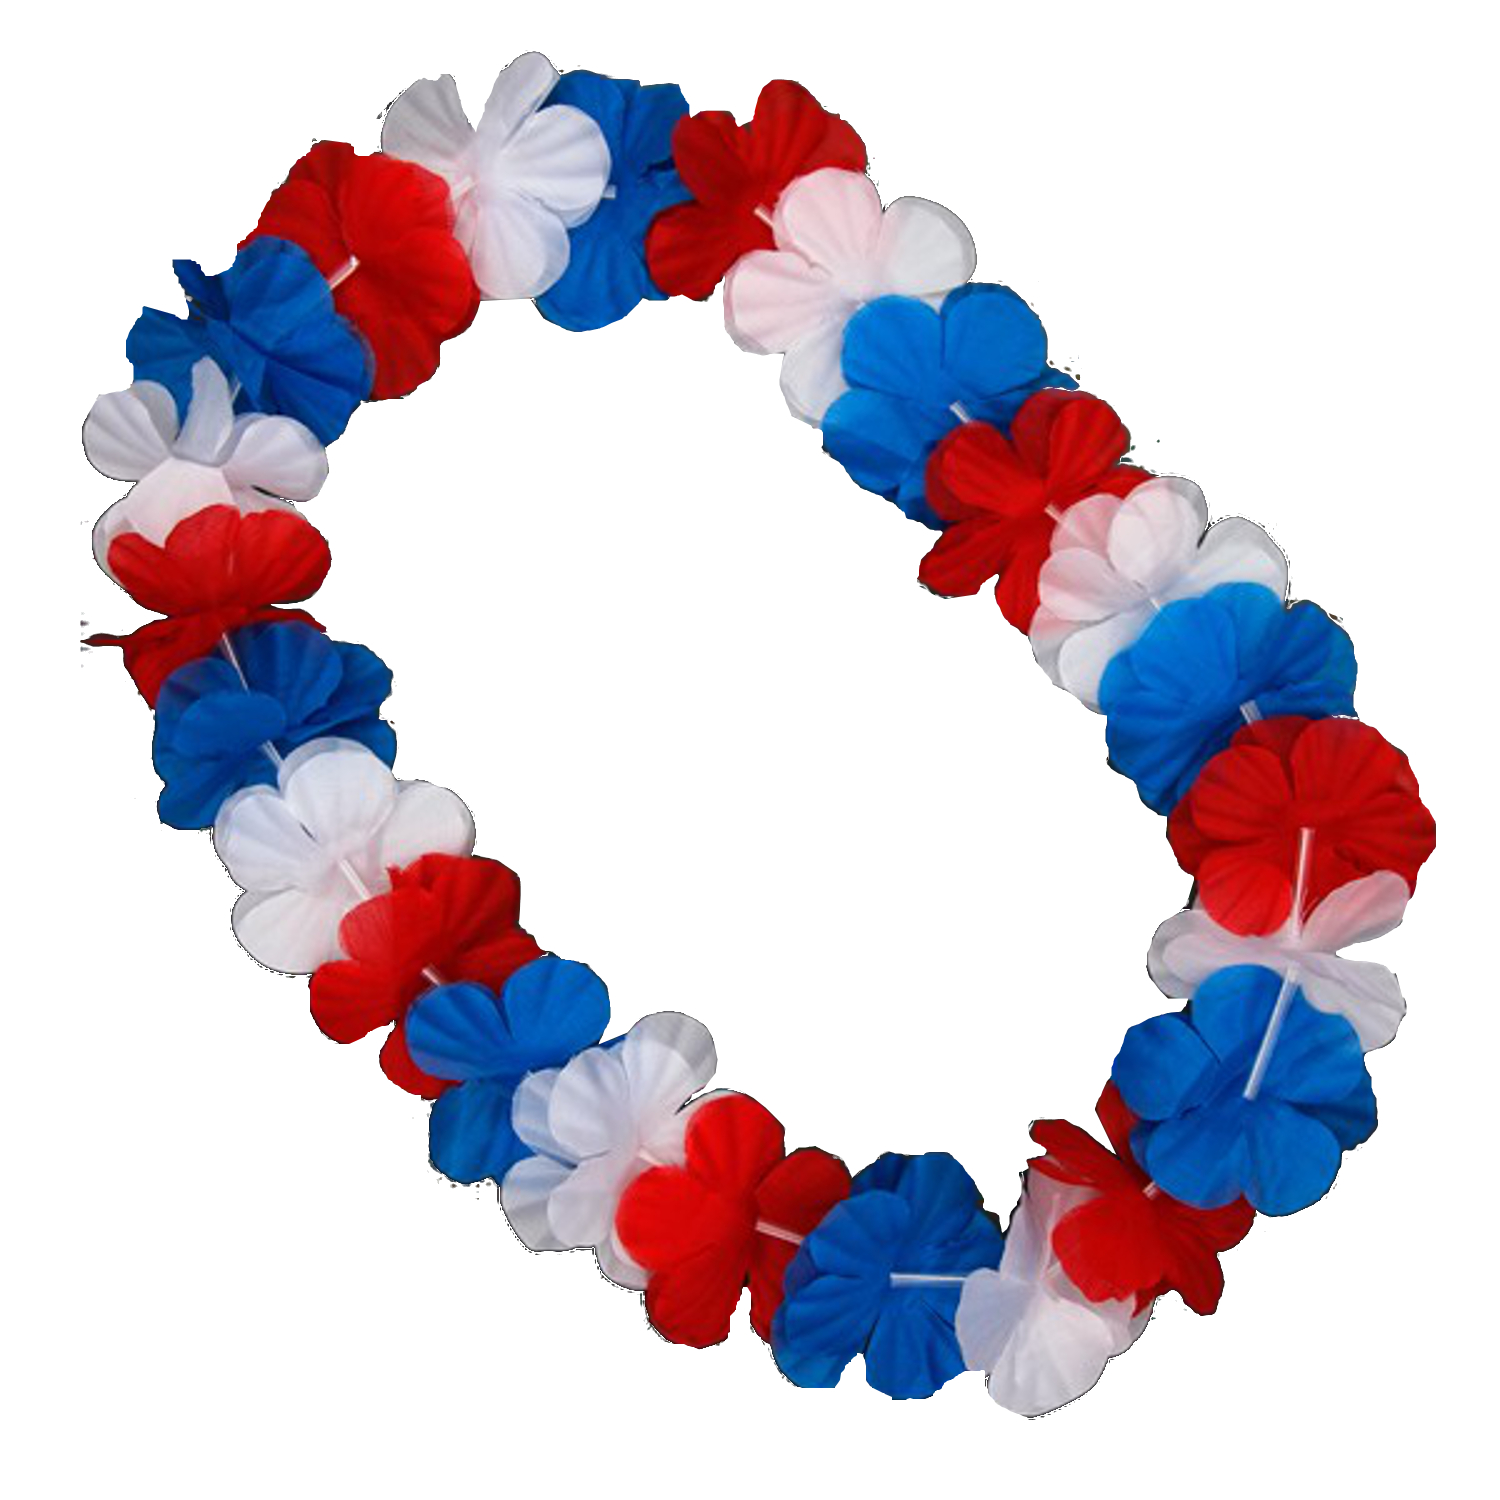 Hawaiian flower lei necklace red white and blue magic matts hawaiian flower lei necklace red white and blue izmirmasajfo